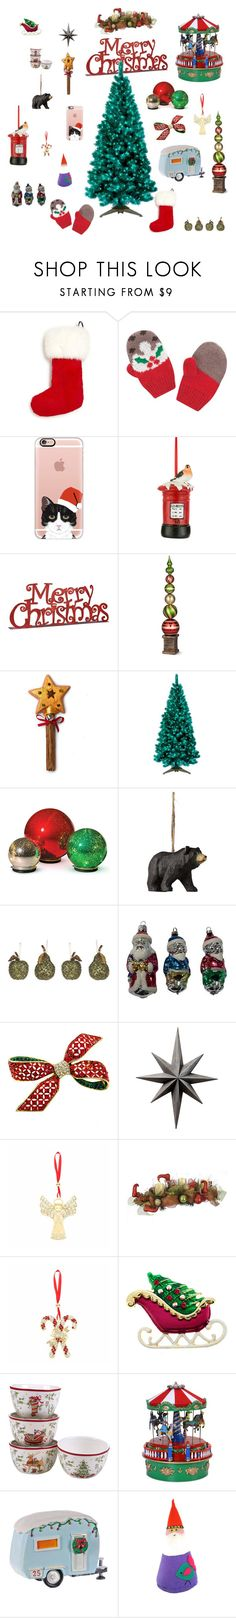 Christmas Ho By Marketingboutique Liked On Polyvore Featuring Interior Interiors